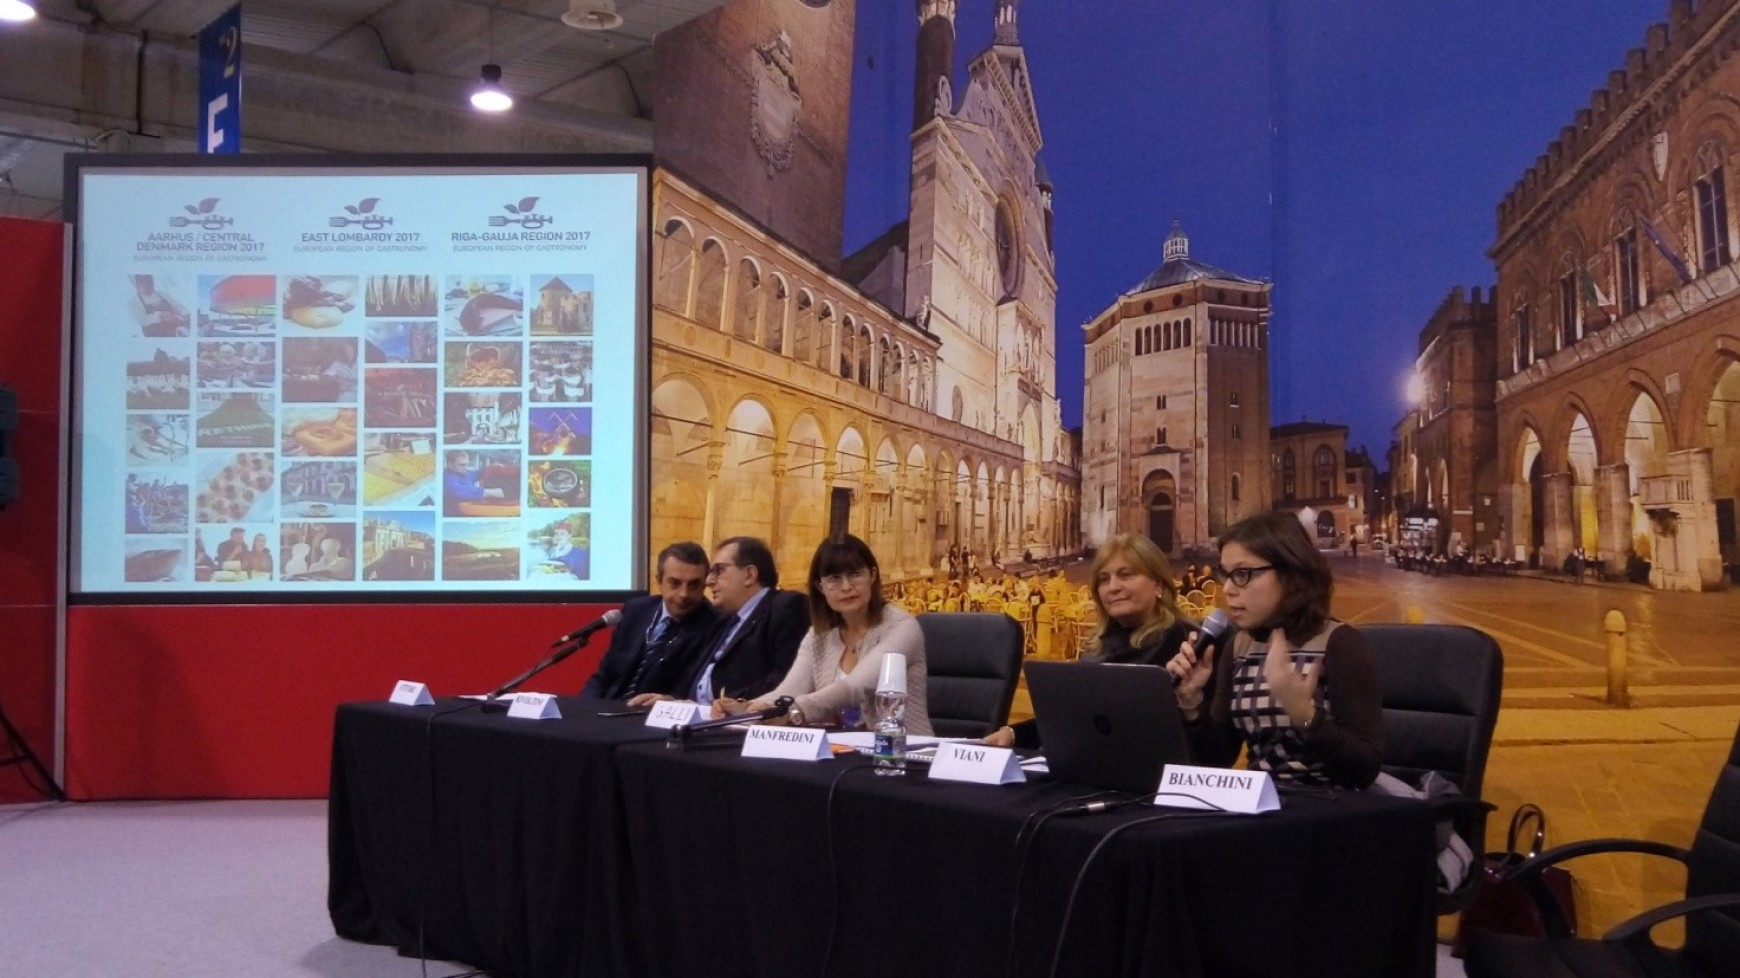 Four provinces collaborate to attain sustainable food supply chains and integrated authentic and quality culinary offers